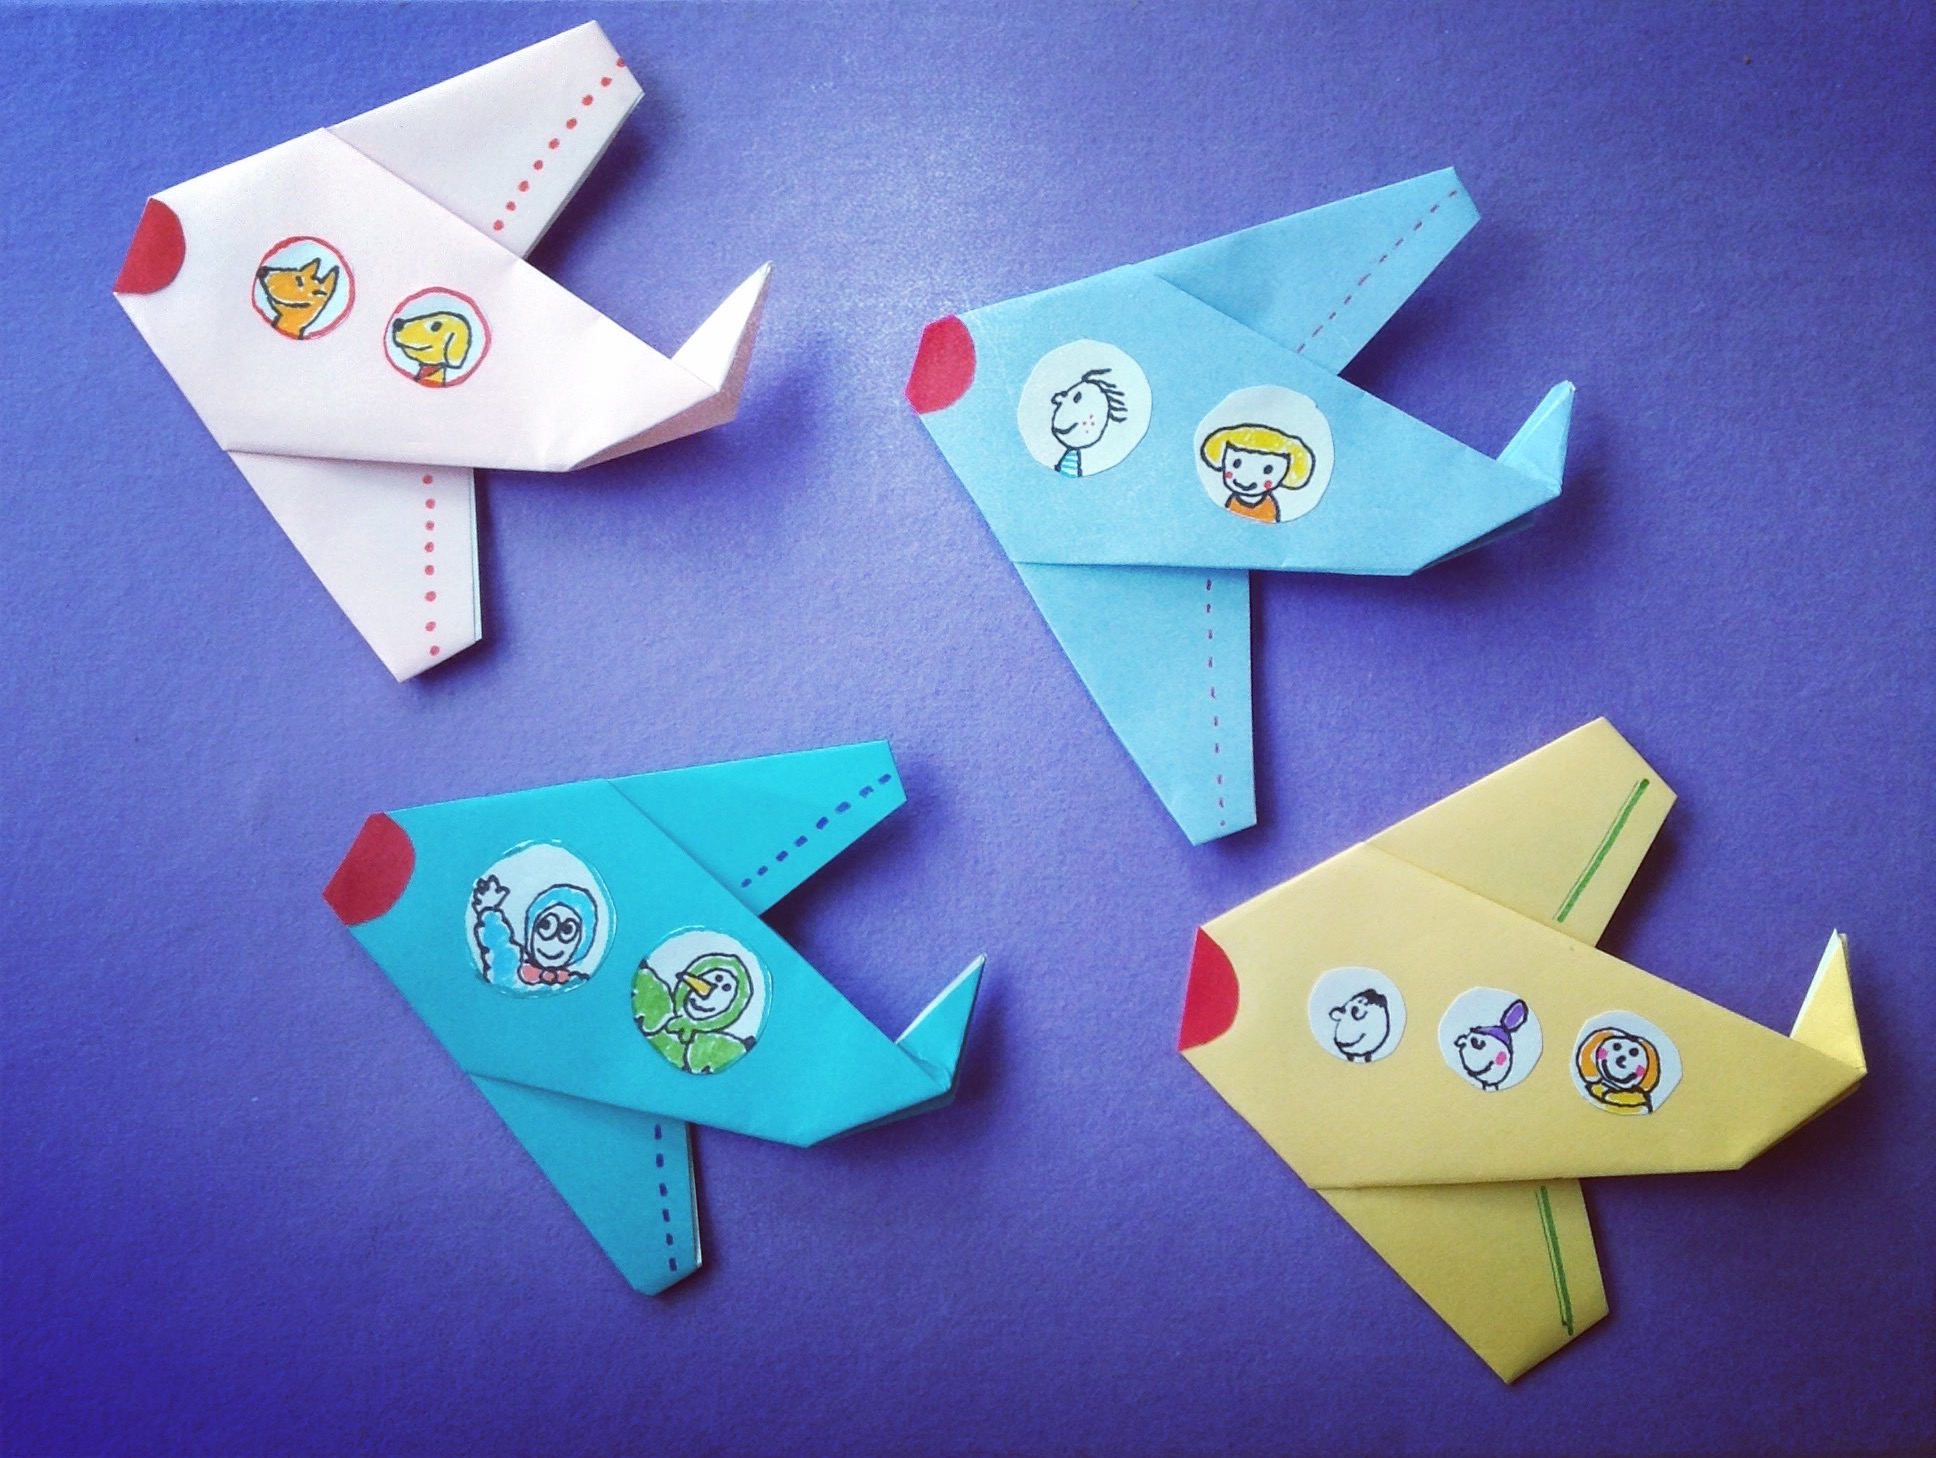 Air planes made of Origami paper